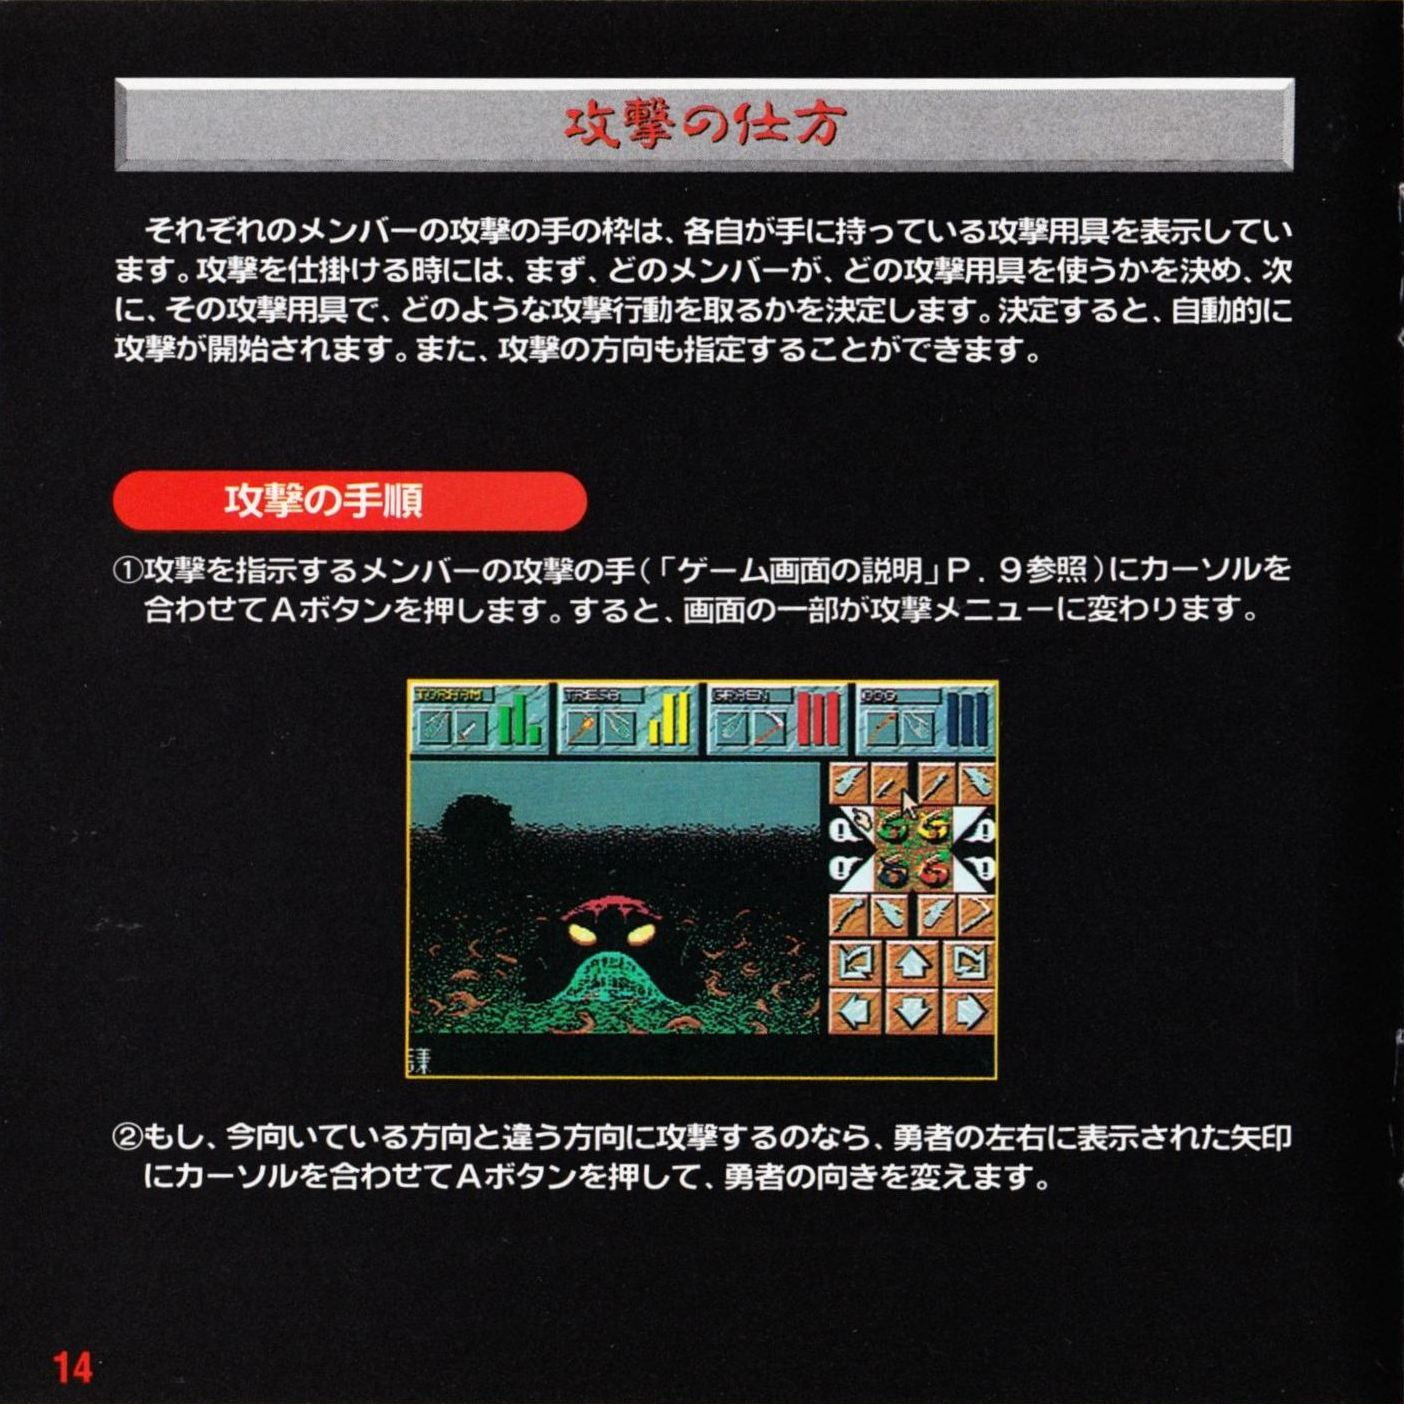 Game - Dungeon Master II - JP - Mega CD - Booklet - Page 016 - Scan